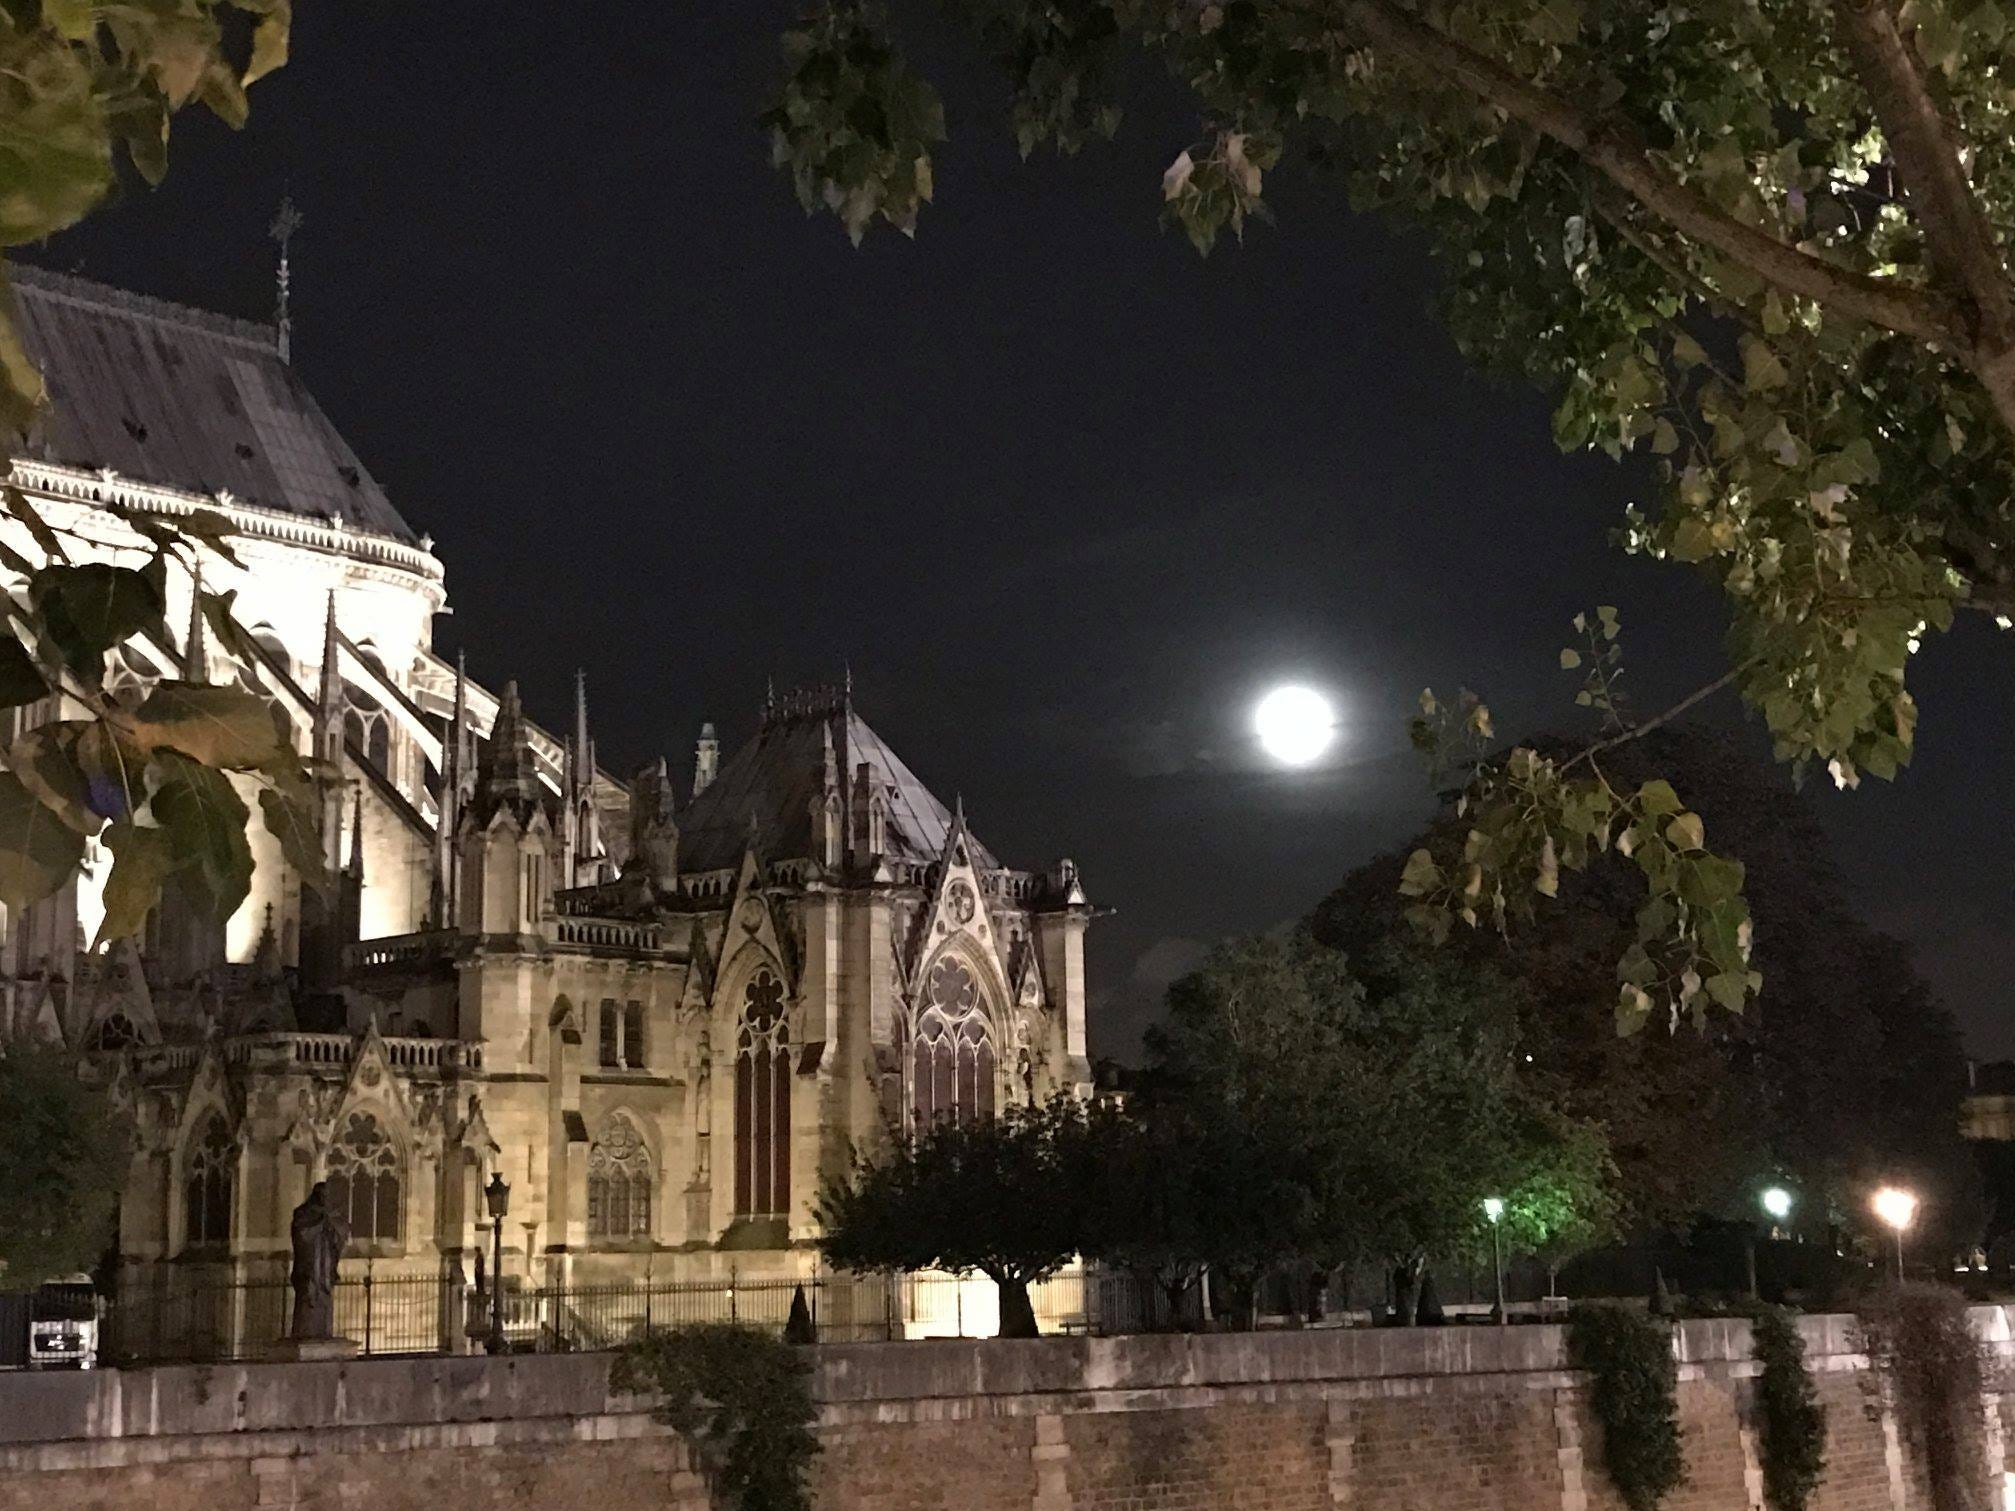 Notre Dame at night, Dec. 13, 2017